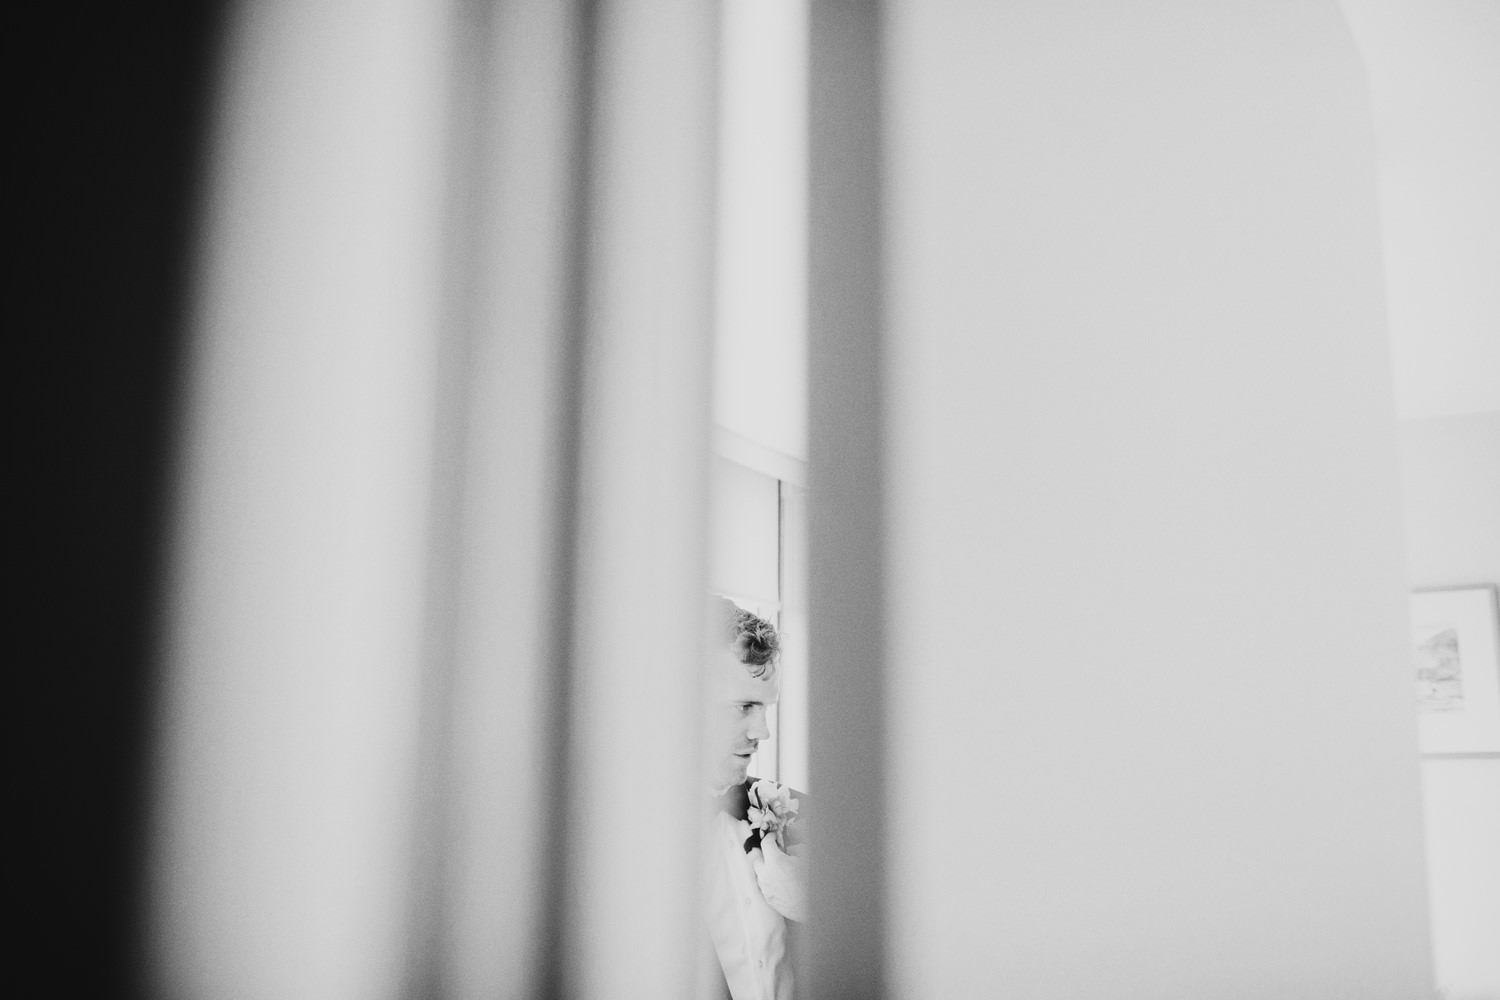 012-Melbourne_Wedding_Photographer_Jonathan_Ong_Best2015.jpg